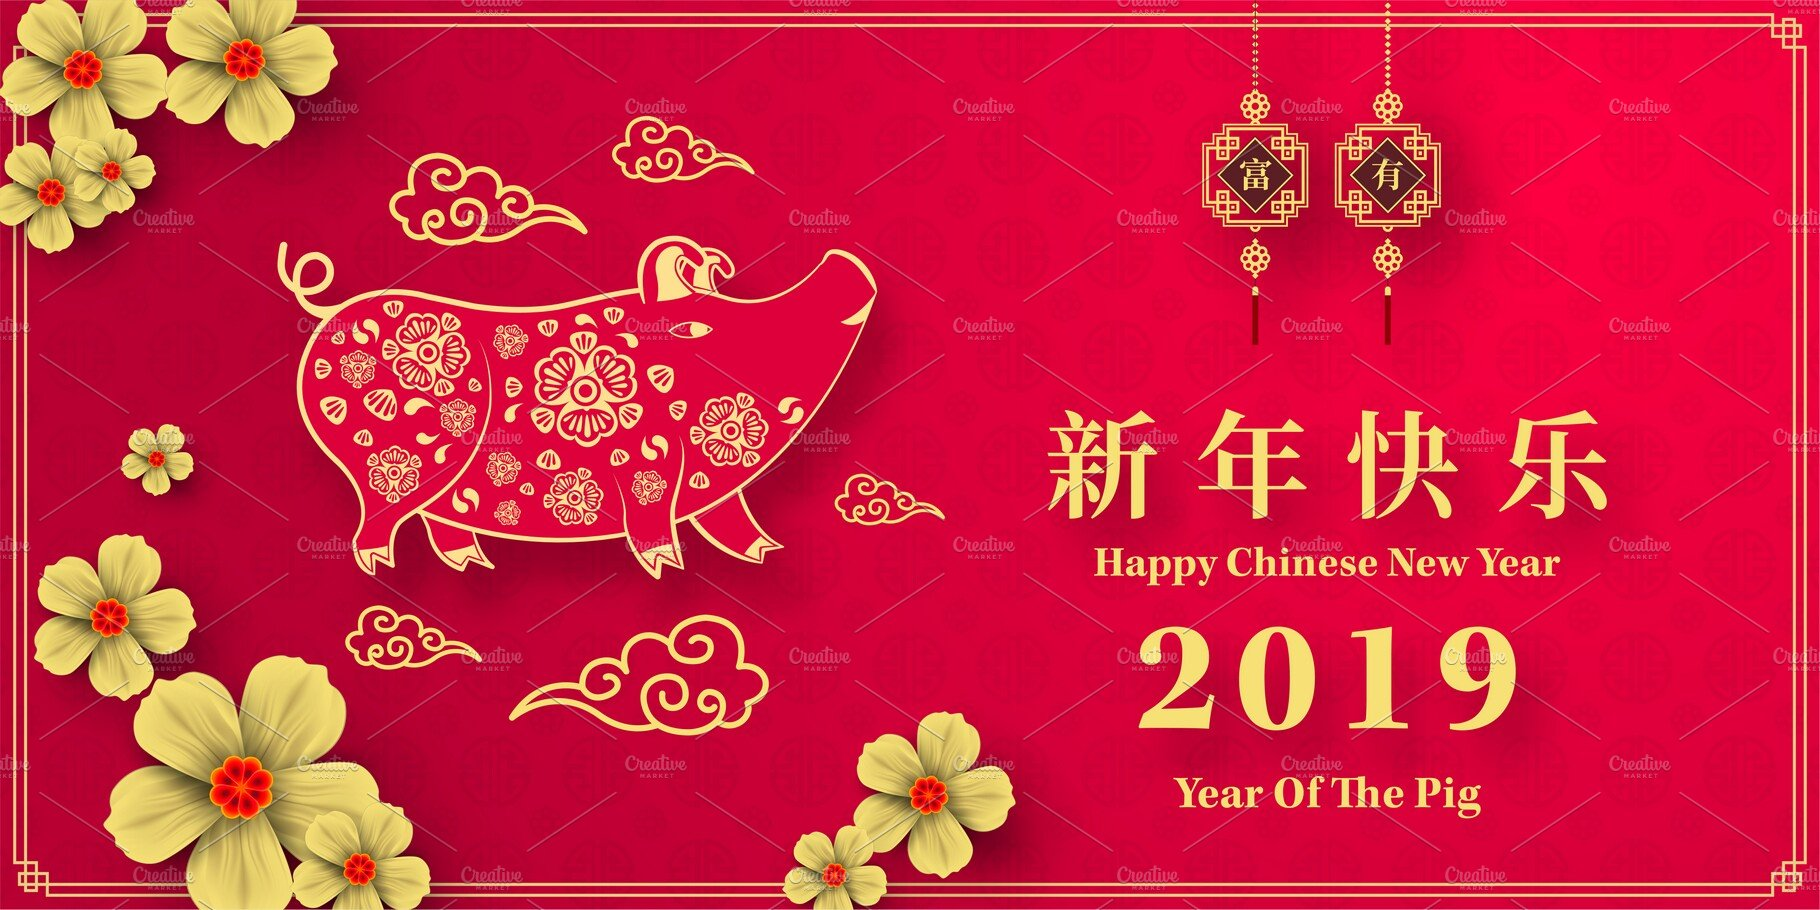 Image result for chinese new year 2019